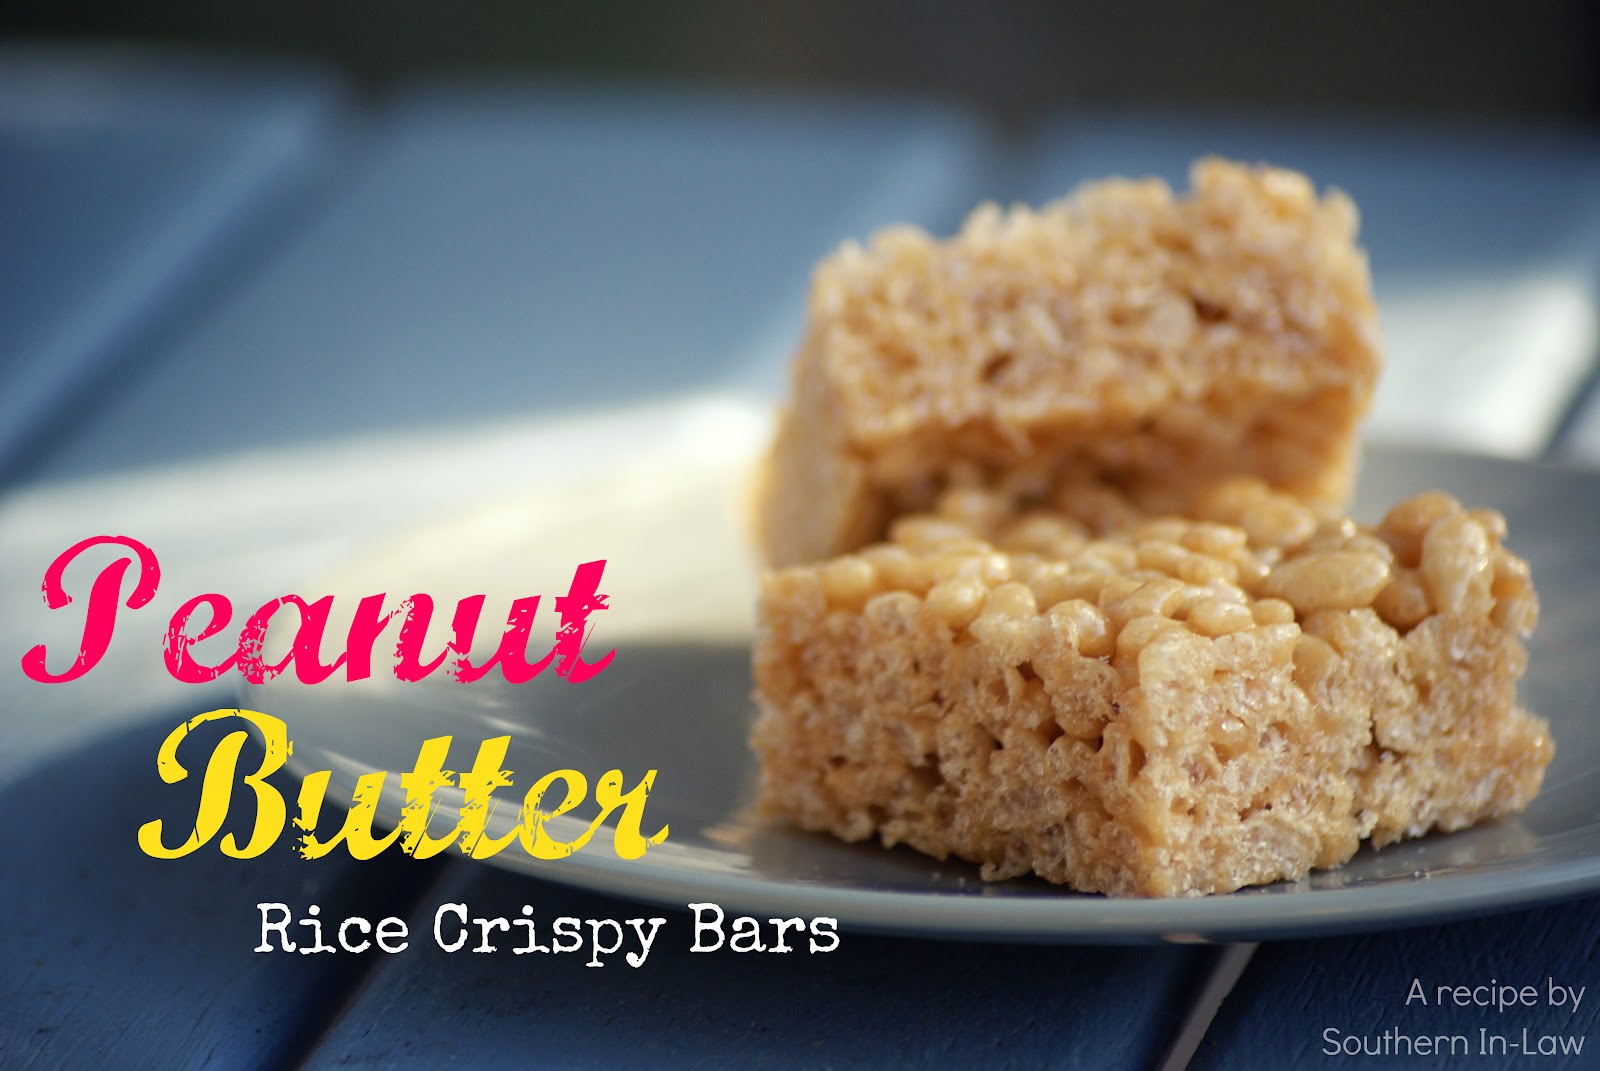 Southern In Law: Recipe: Peanut Butter Rice Crispy Bars